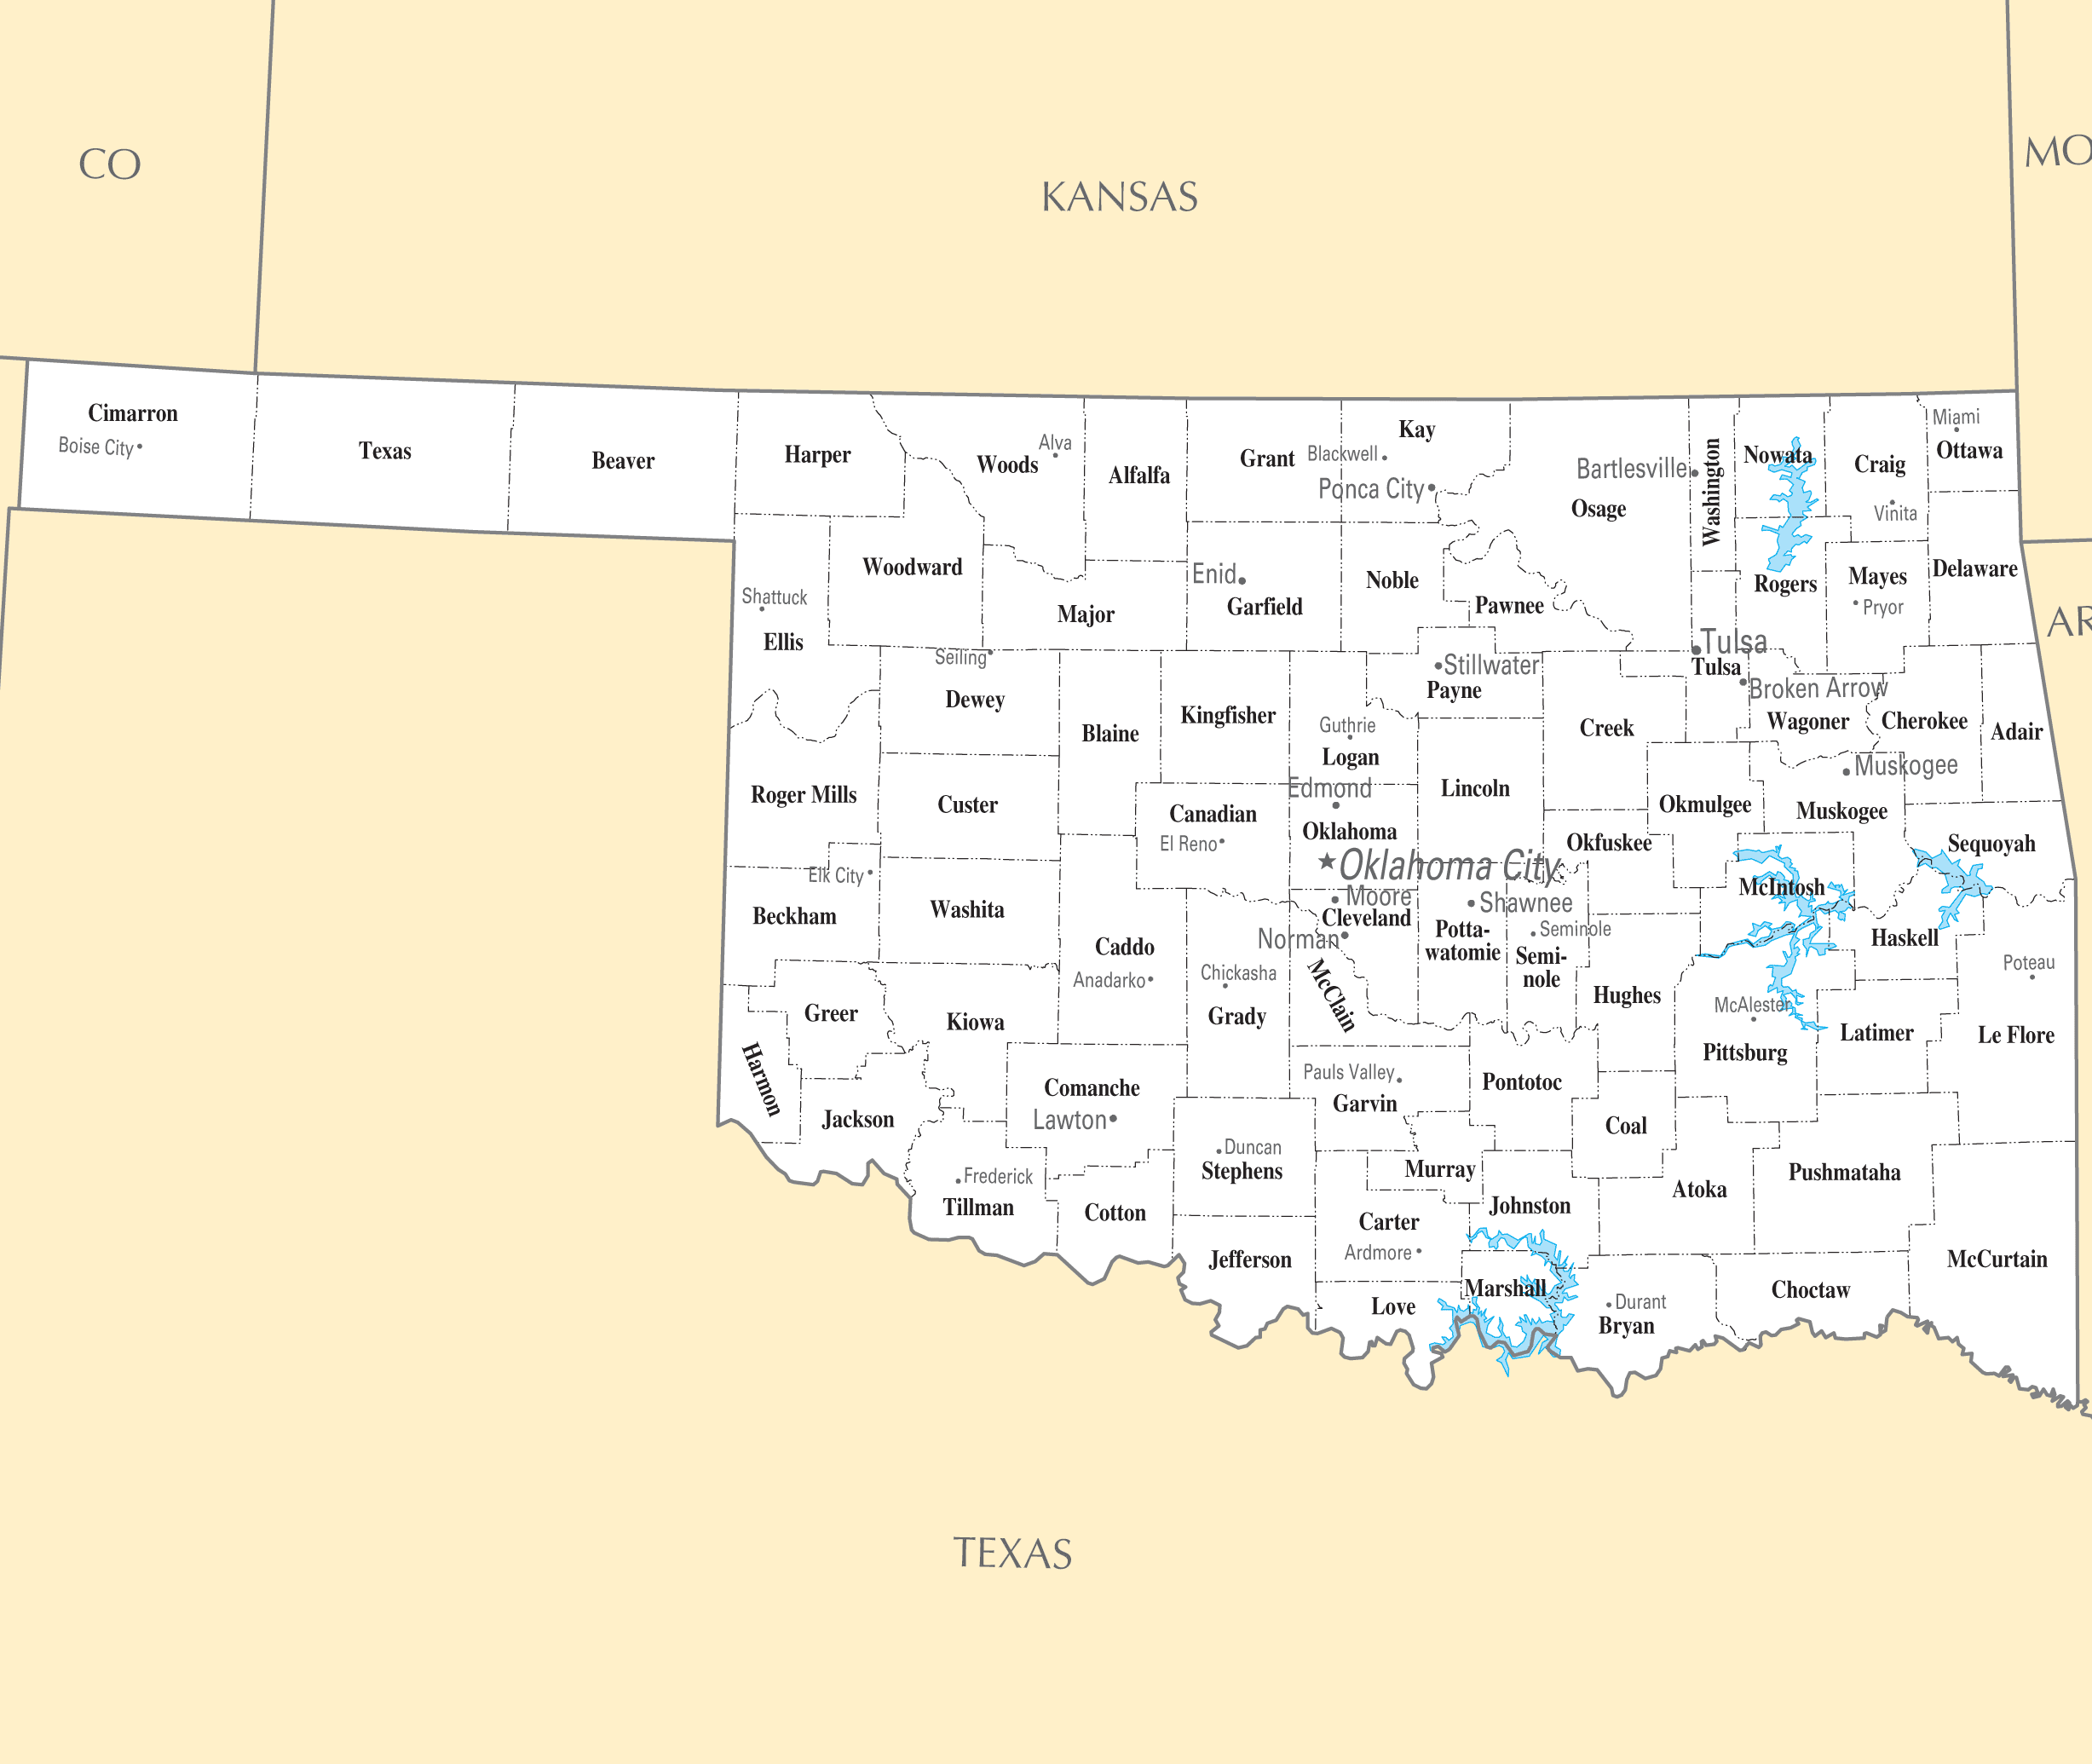 Map Of Oklahoma Cities And Towns Oklahoma Cities And Towns • Mapsof.net Map Of Oklahoma Cities And Towns